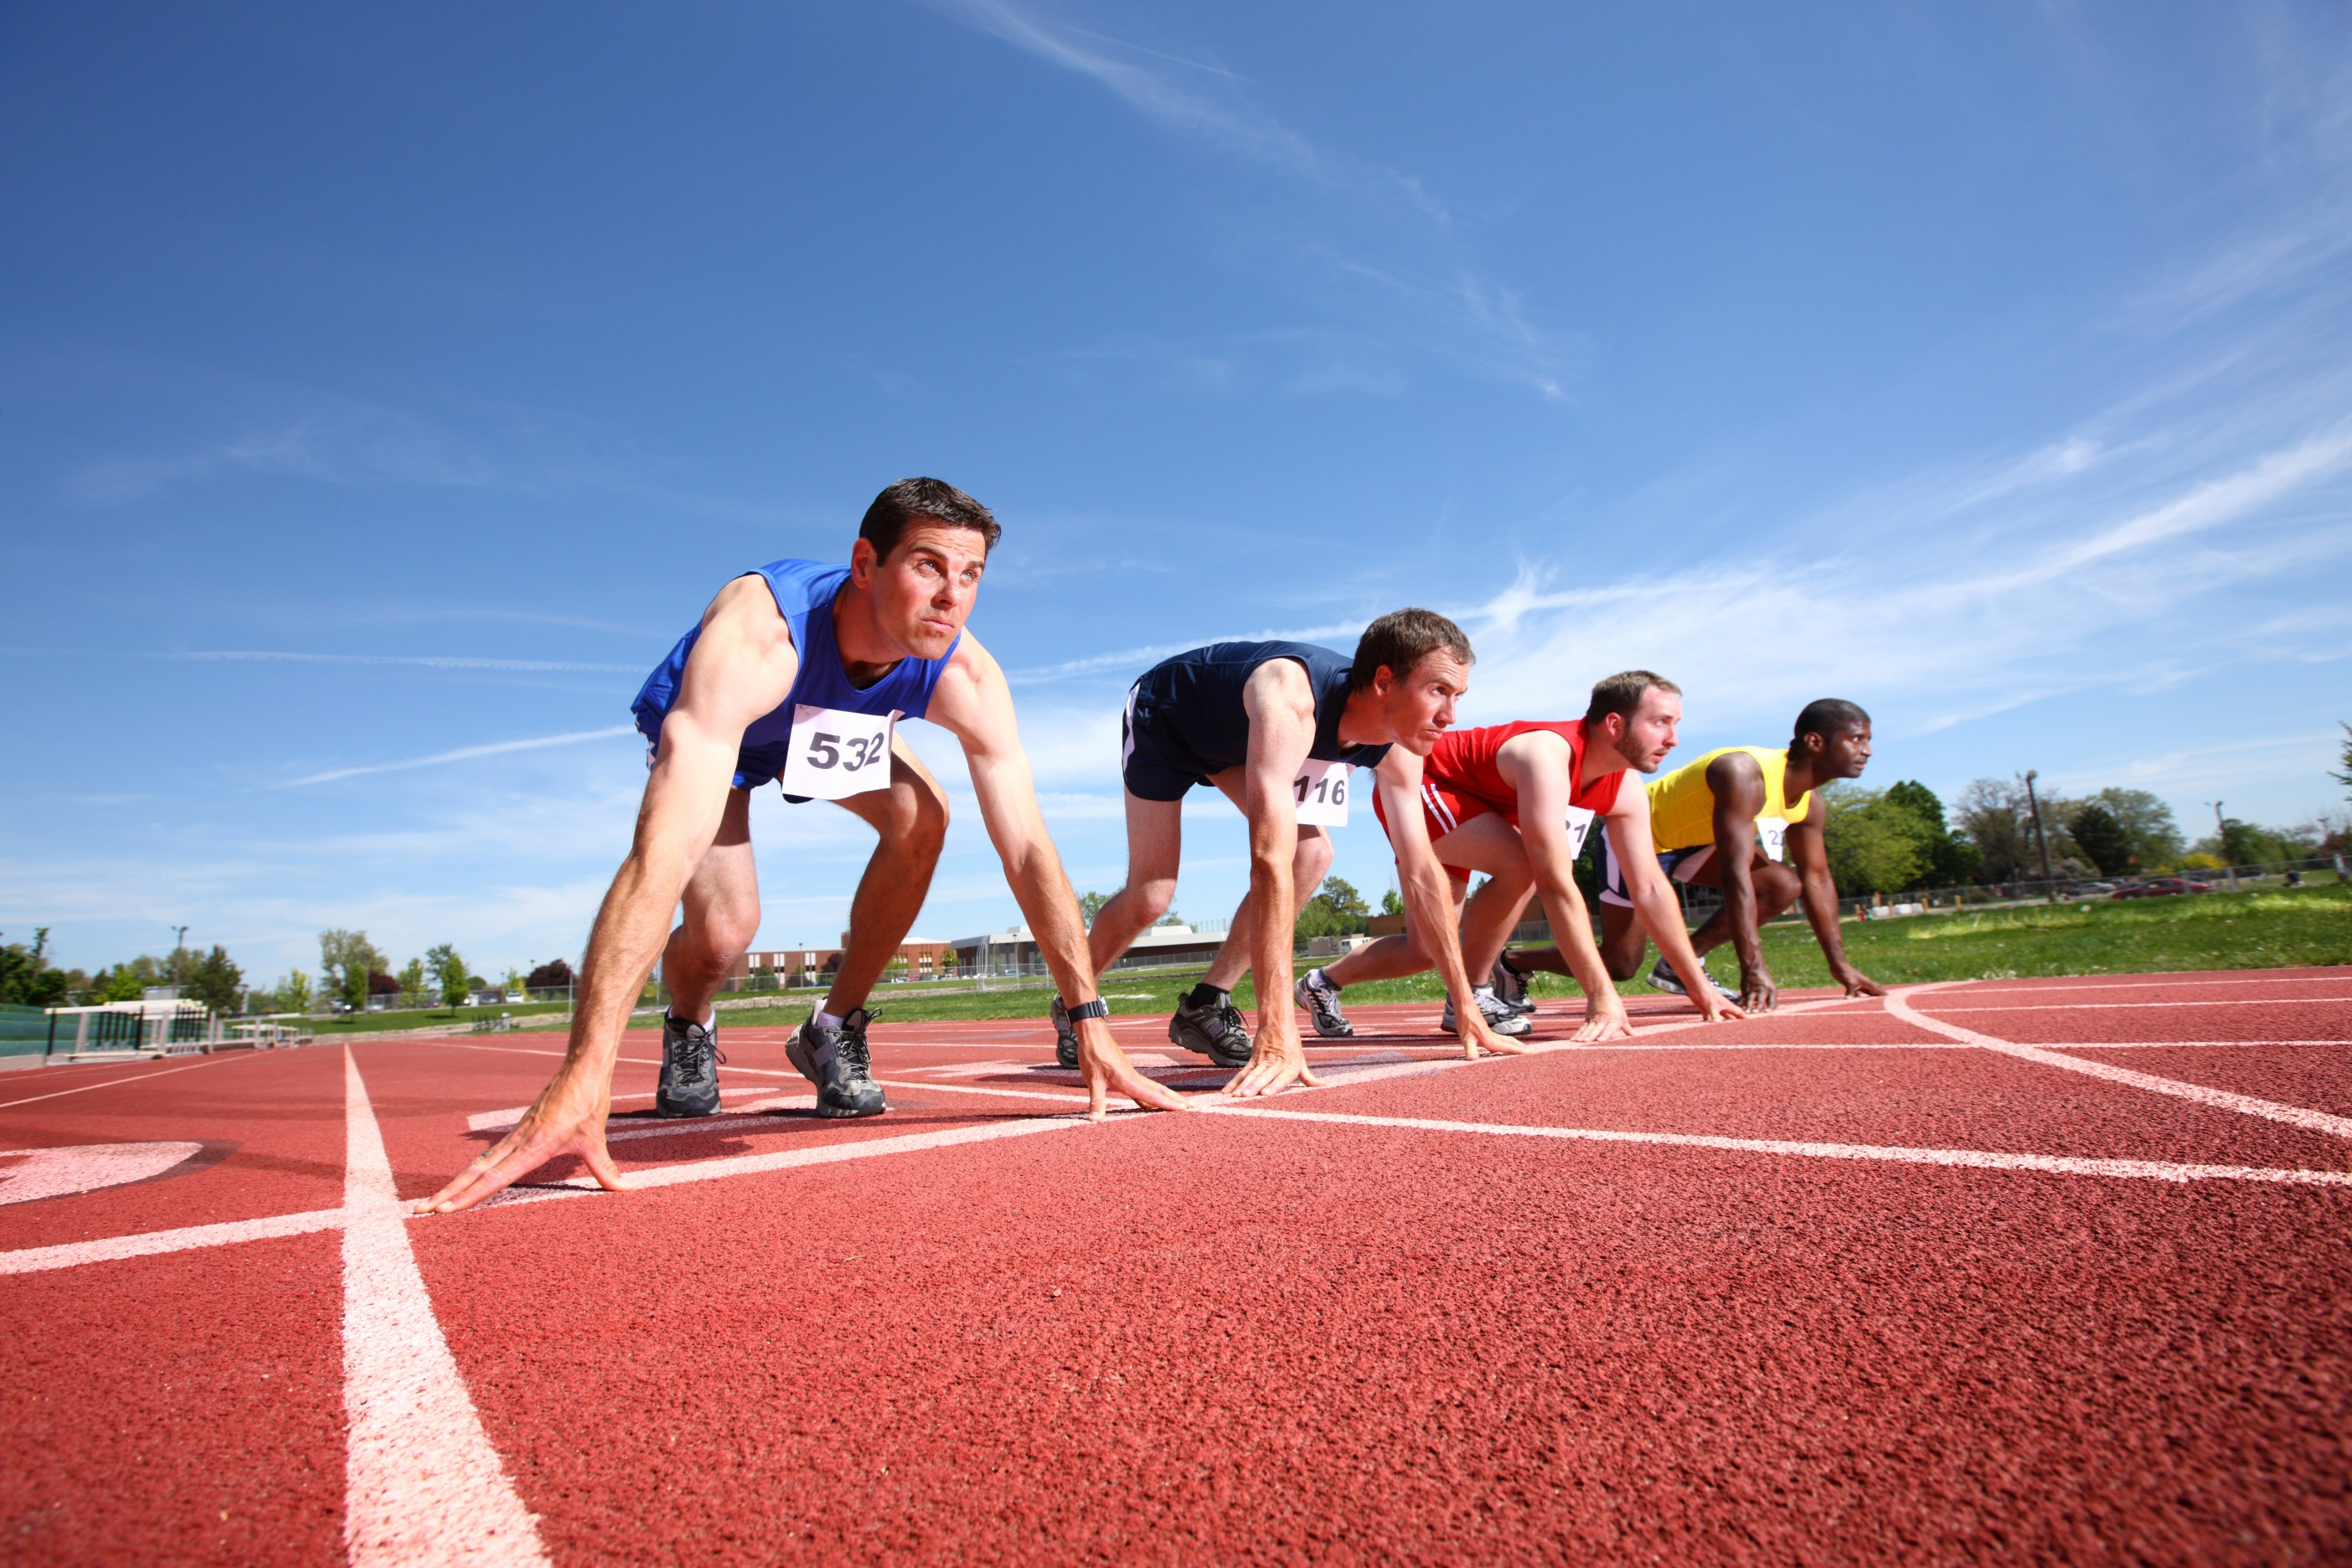 Polymeric surfaces are the ideal solution for athletics tracks and court sports played on a MUGA.